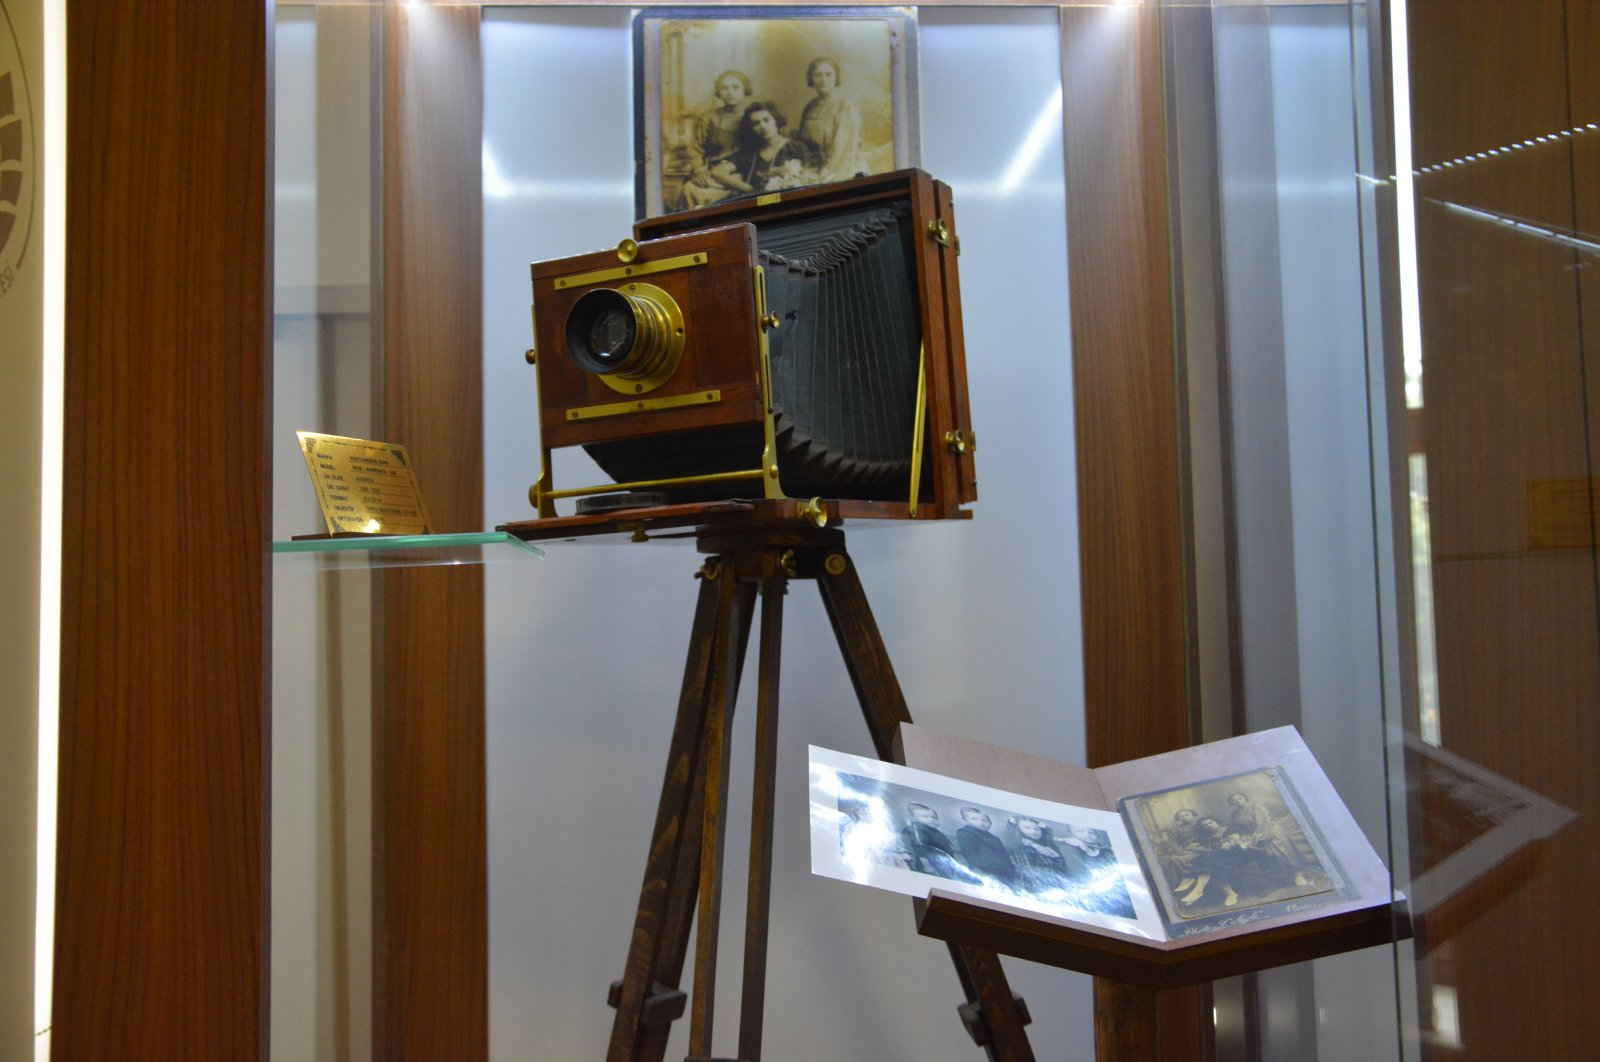 The 120-year-old camera was used in post-mortem photography in the past. (AA PHOTO)